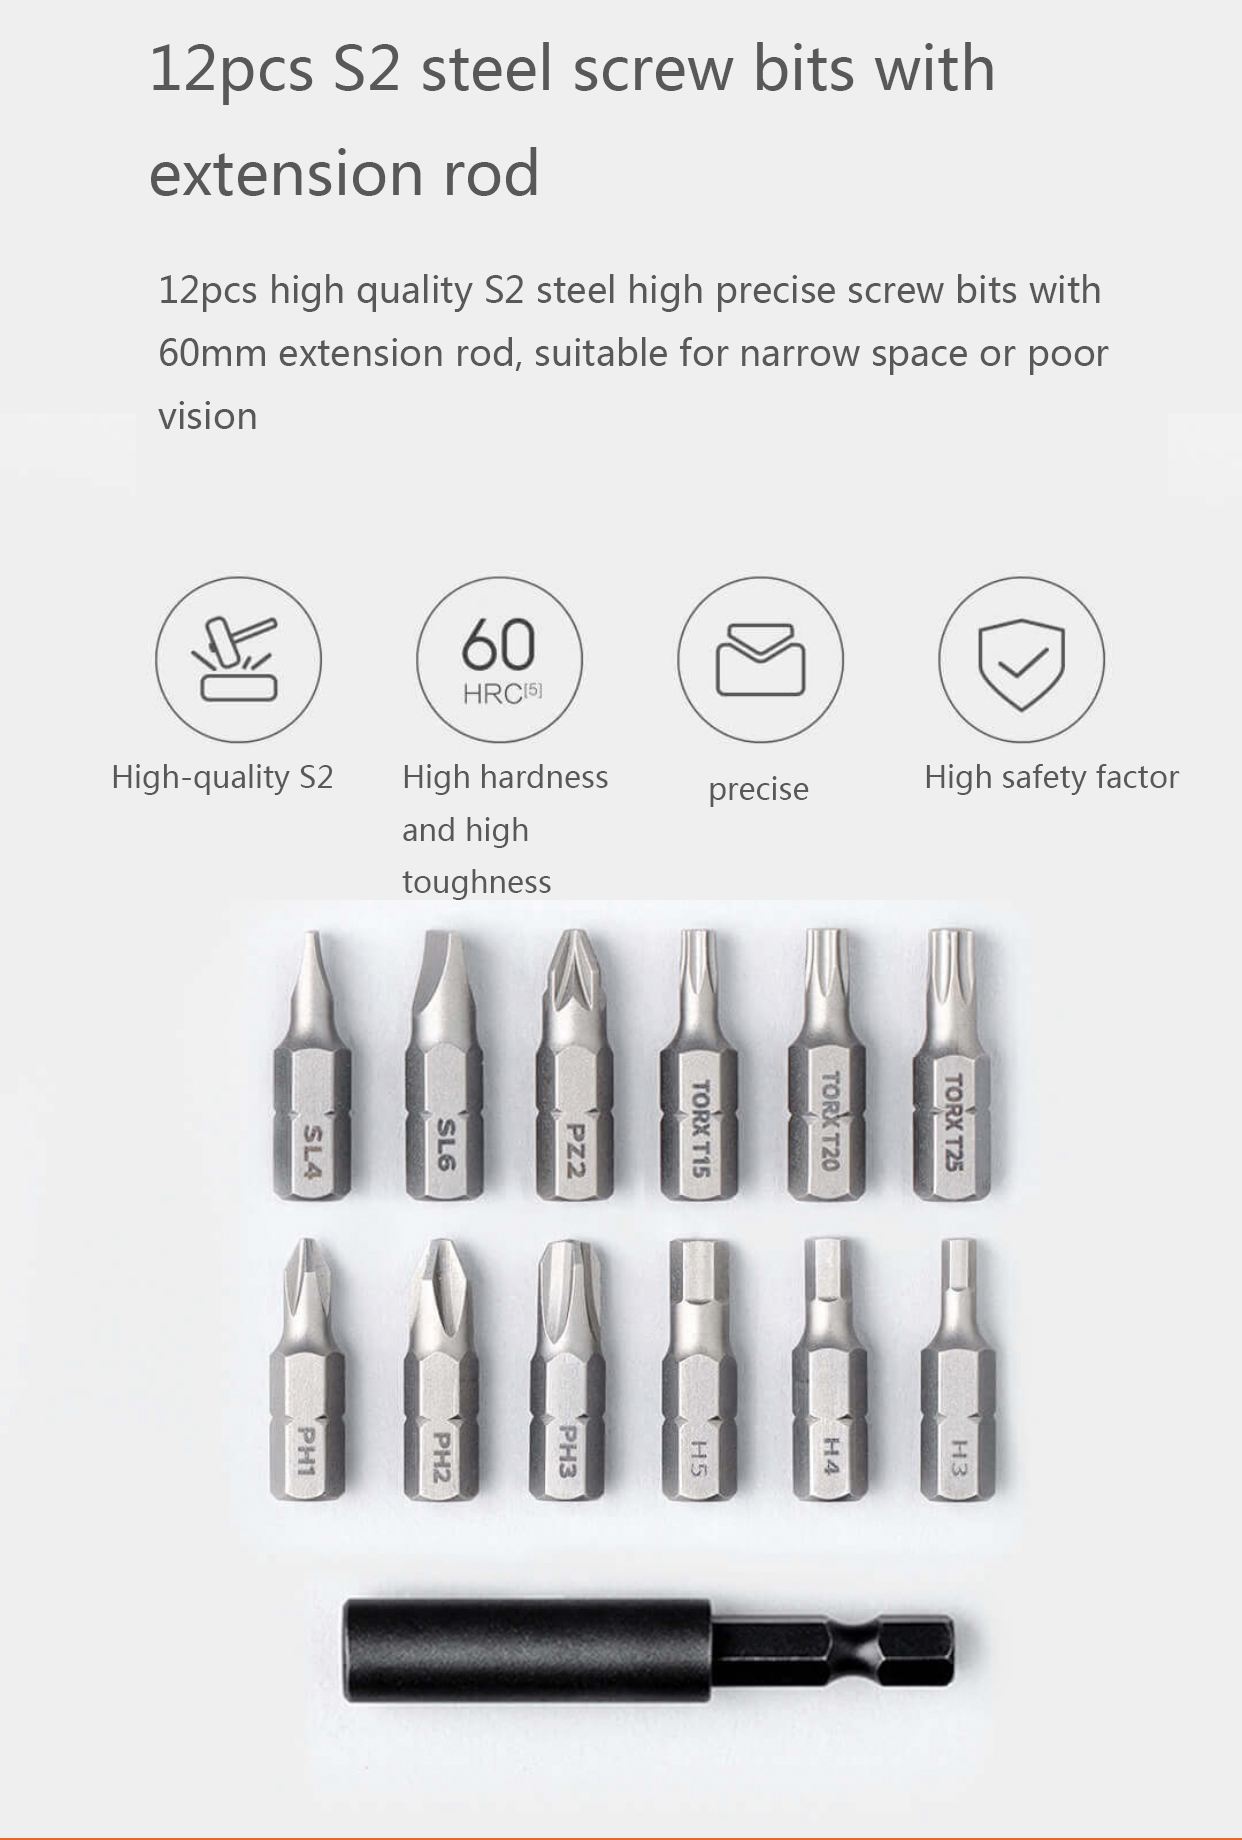 XIAOMI Mijia Cordless Rechargeable Screwdriver 3.6V 2000mAh Li-ion 5N.m Electric Screwdriver With 12Pcs S2 Screw Bits for Home DIY